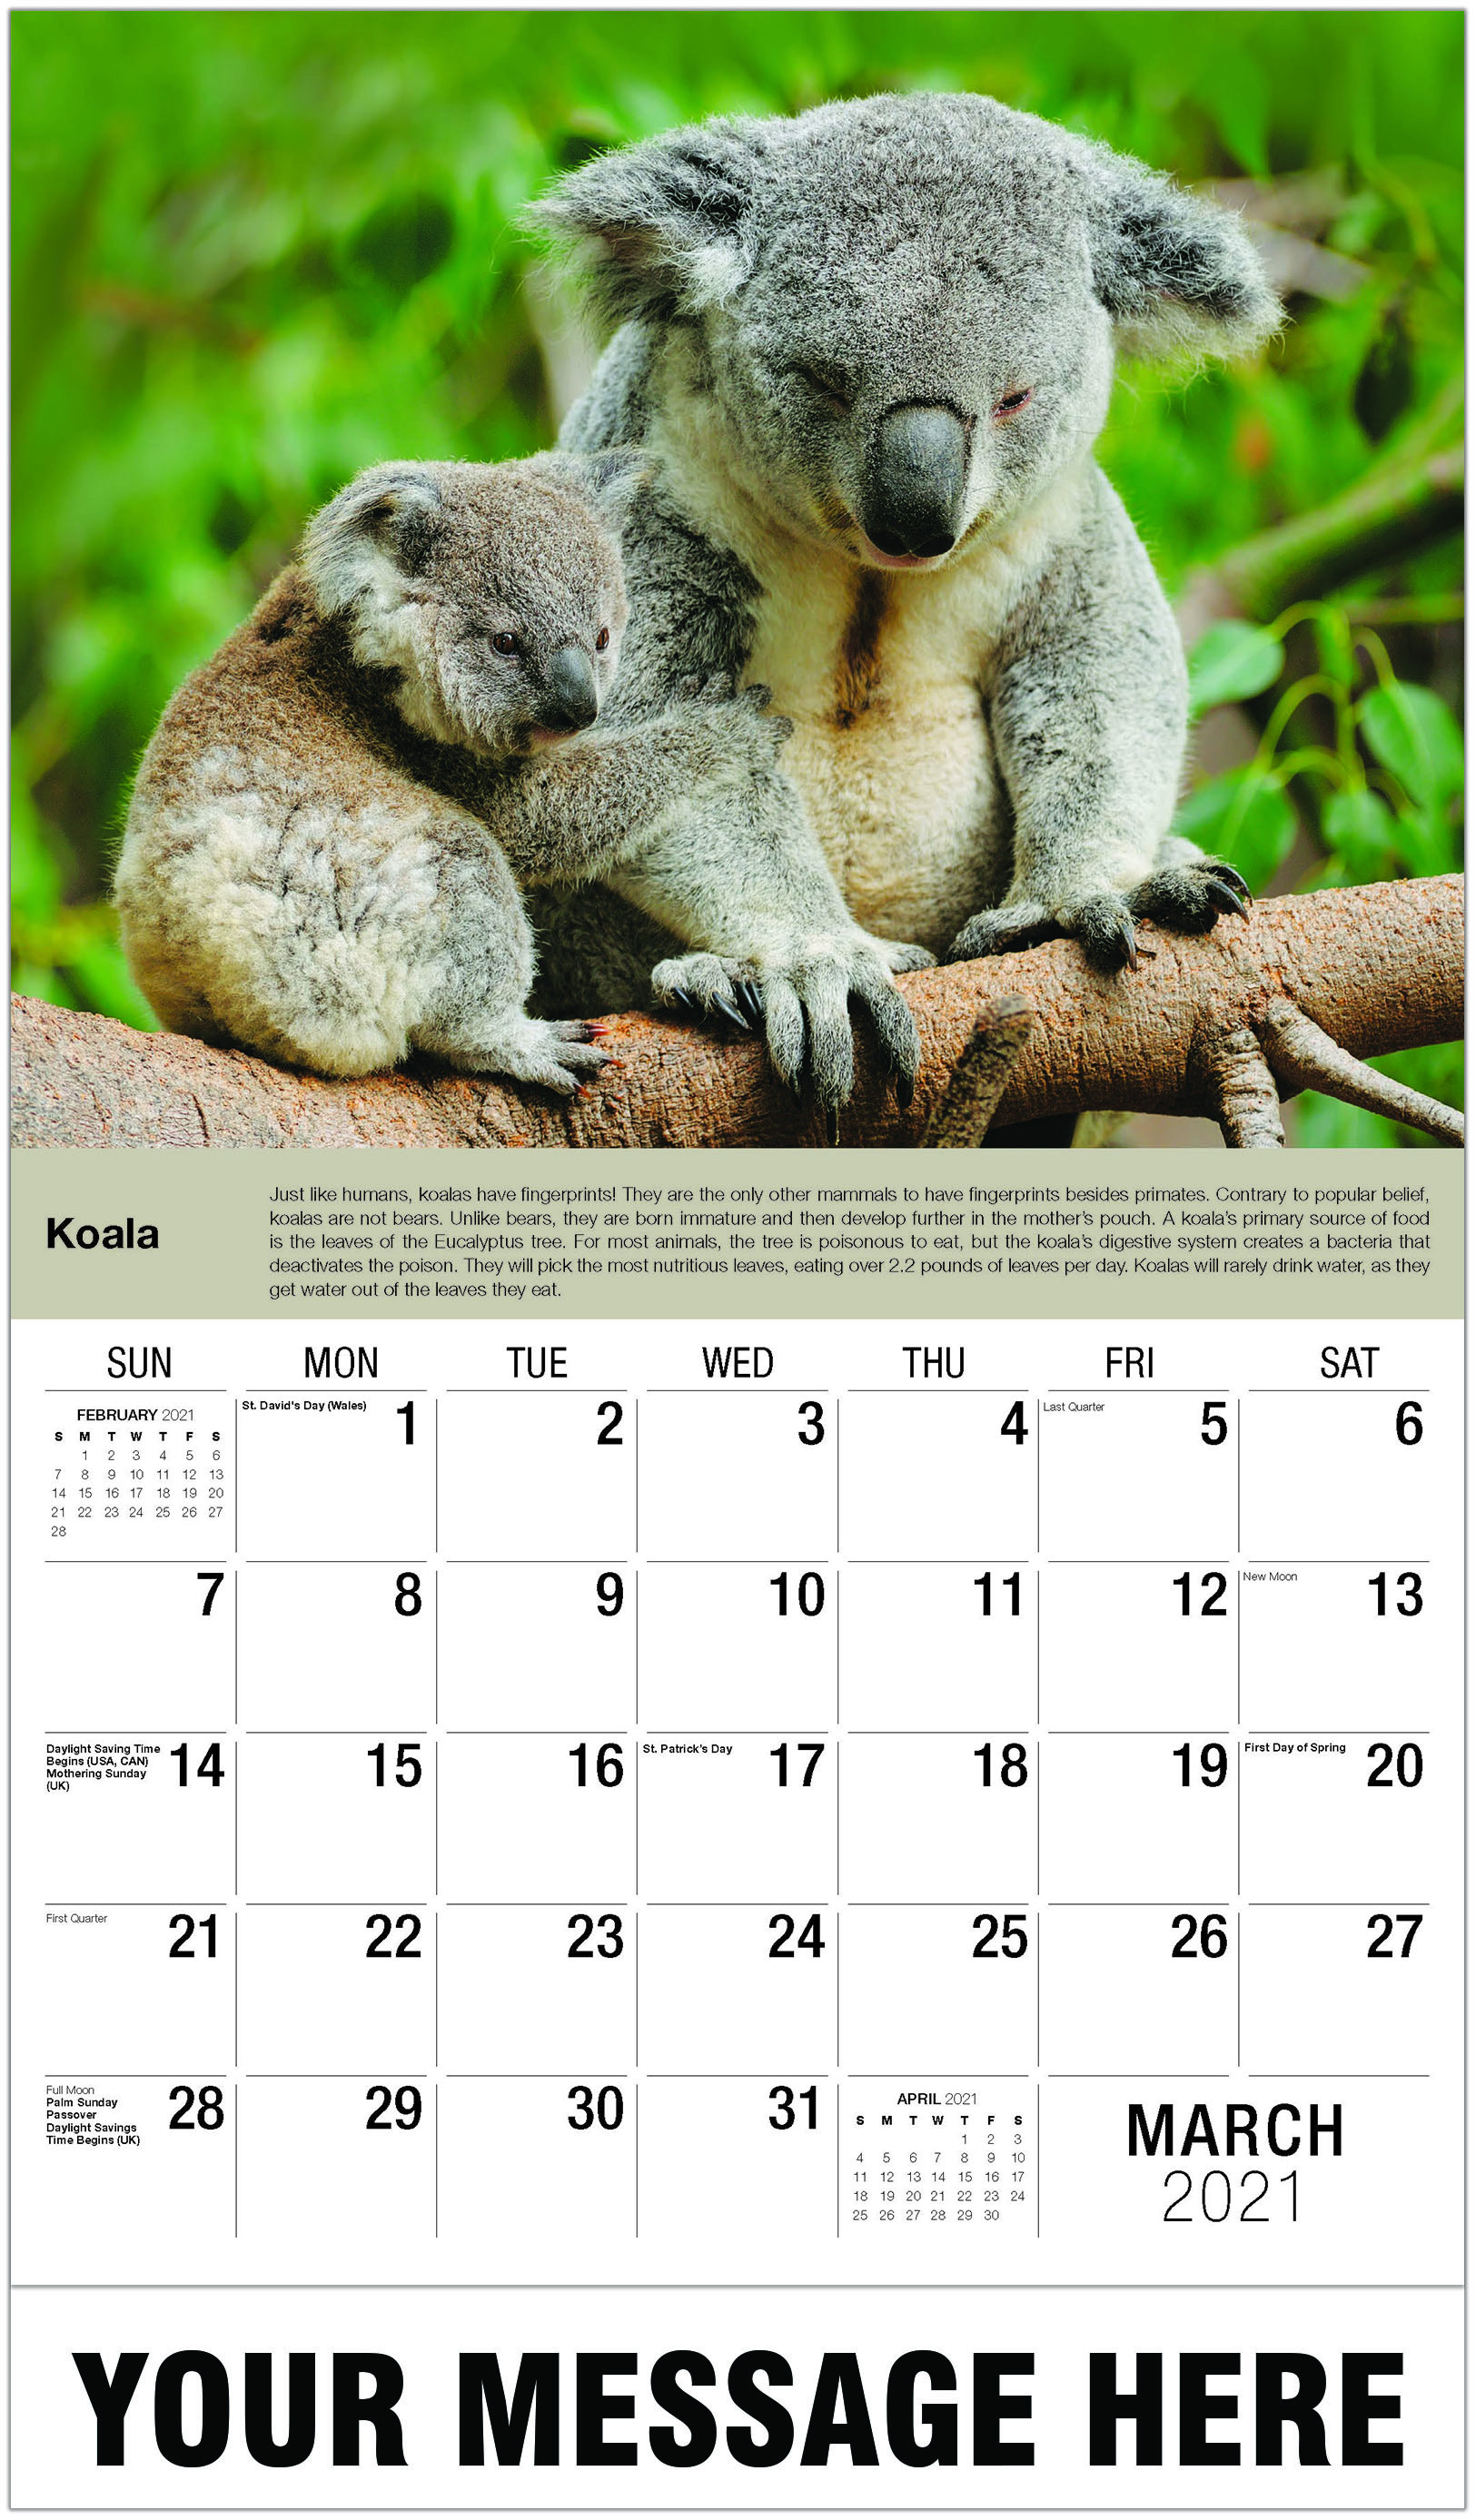 Koala - March - International Wildlife 2021 Promotional Calendar